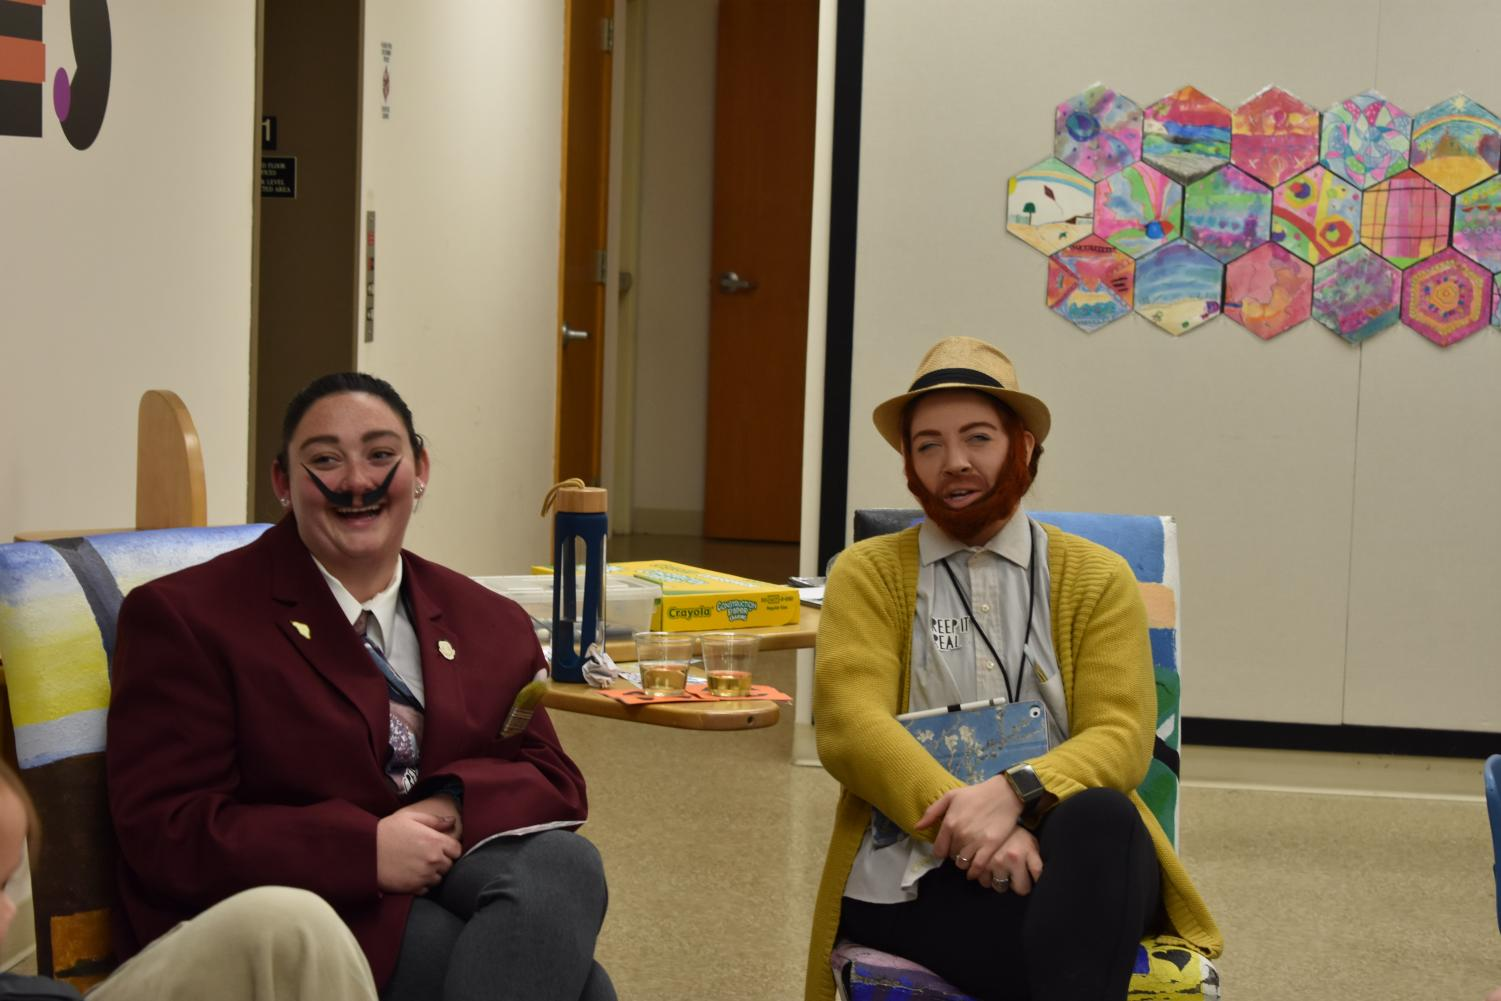 Marshall art education graduates Kaitlin Donnally and Charity Baker dressed as artists Salvador Dali and Vincent Van Gogh for the The Huntington Museum of Art's Night at the BOO-seum Oct. 22.